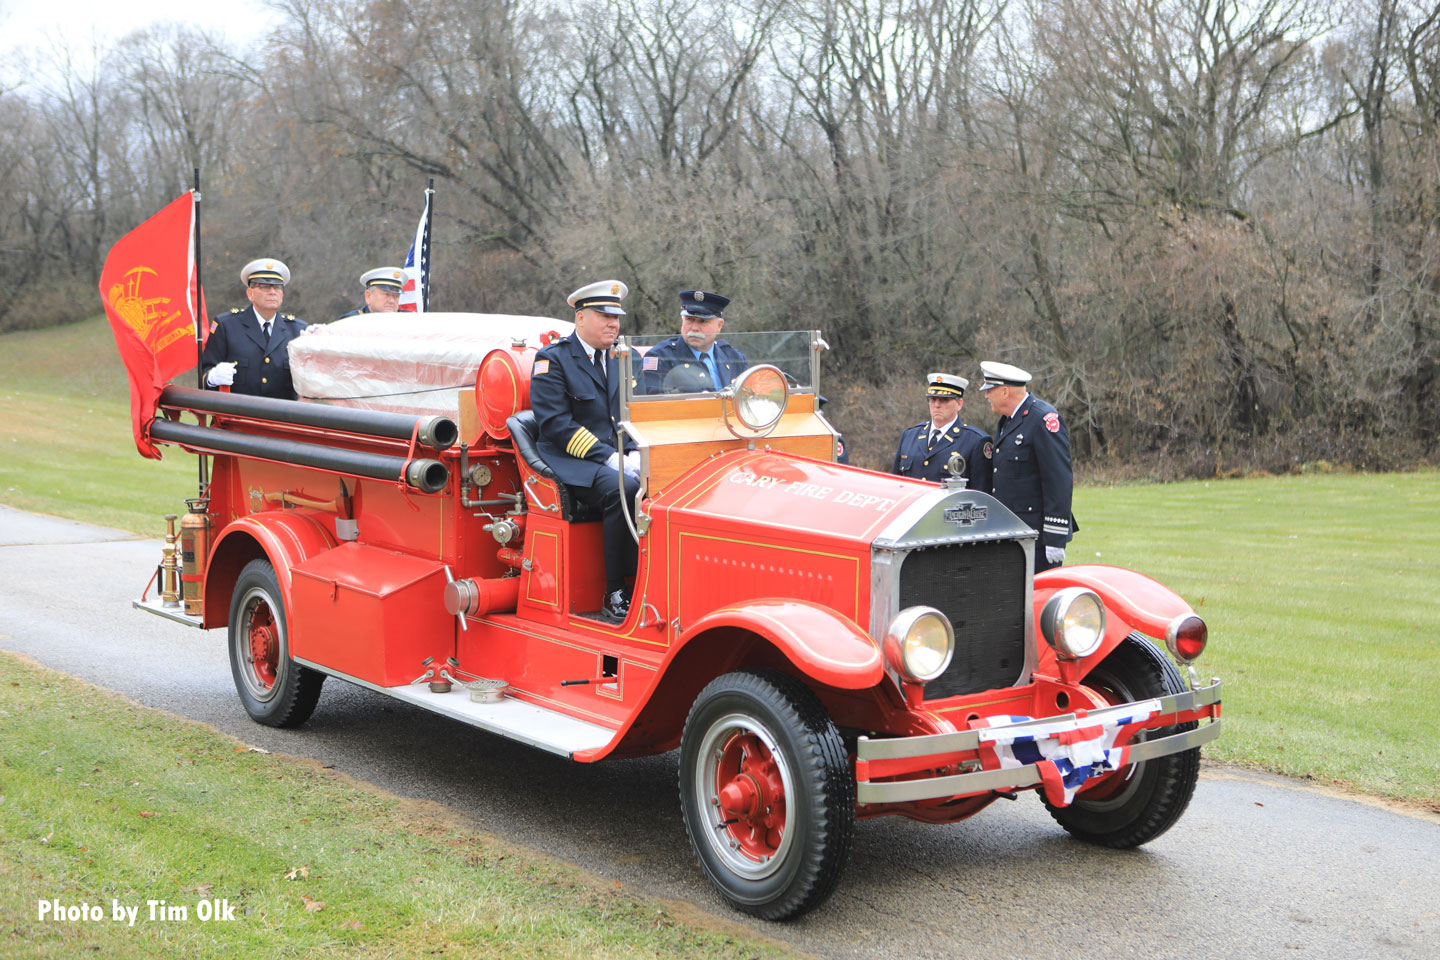 An old fire apparatus bearing the casket.